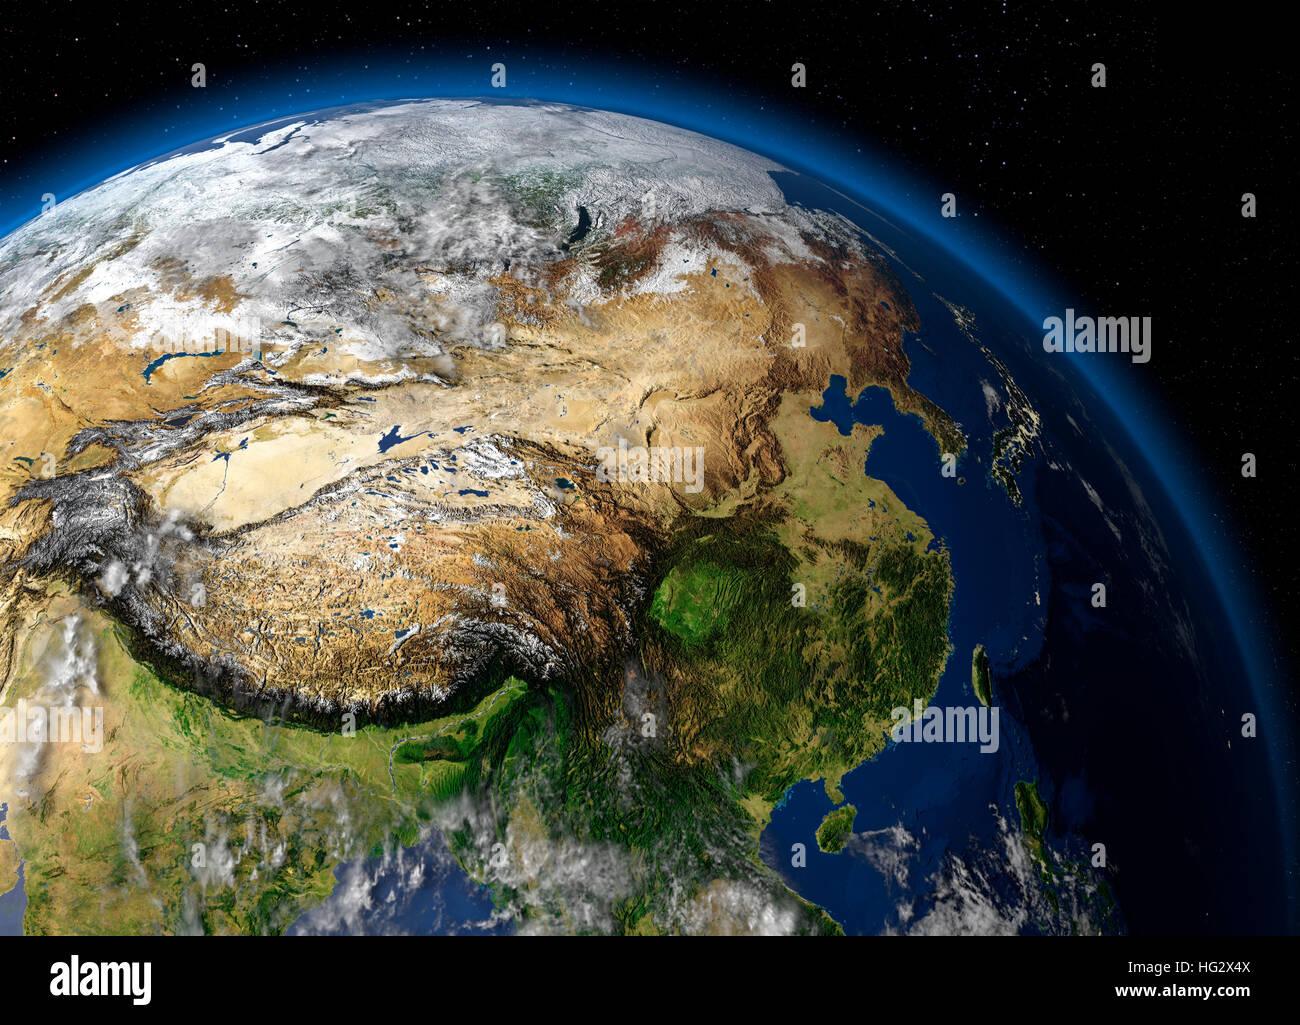 Earth Viewed From Space Showing China Realistic Digital